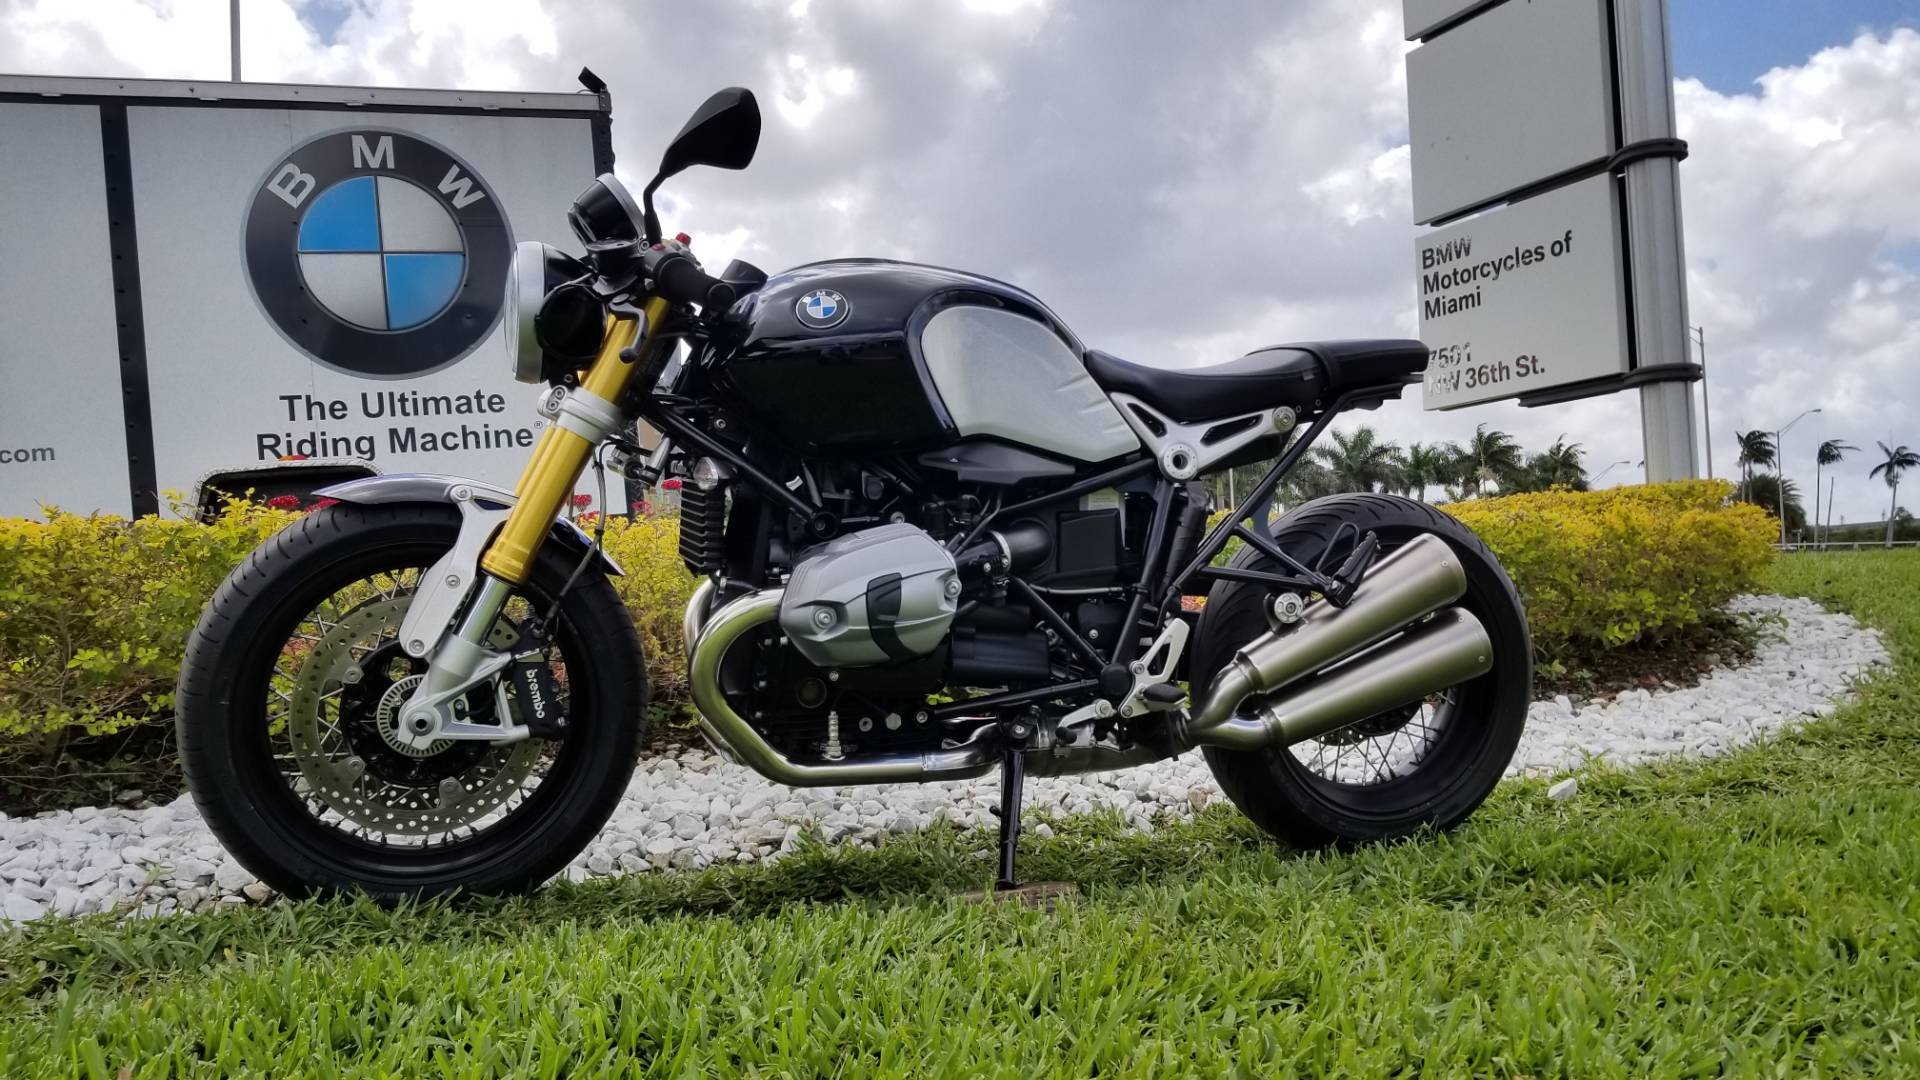 Used 2017 BMW R nine T For Sale, Pre owned BMW R nineT For Sale, BMW Motorcycle RnineT, BMW Motorcycles of Miami, Motorcycles of Miami, Motorcycles Miami - Photo 6